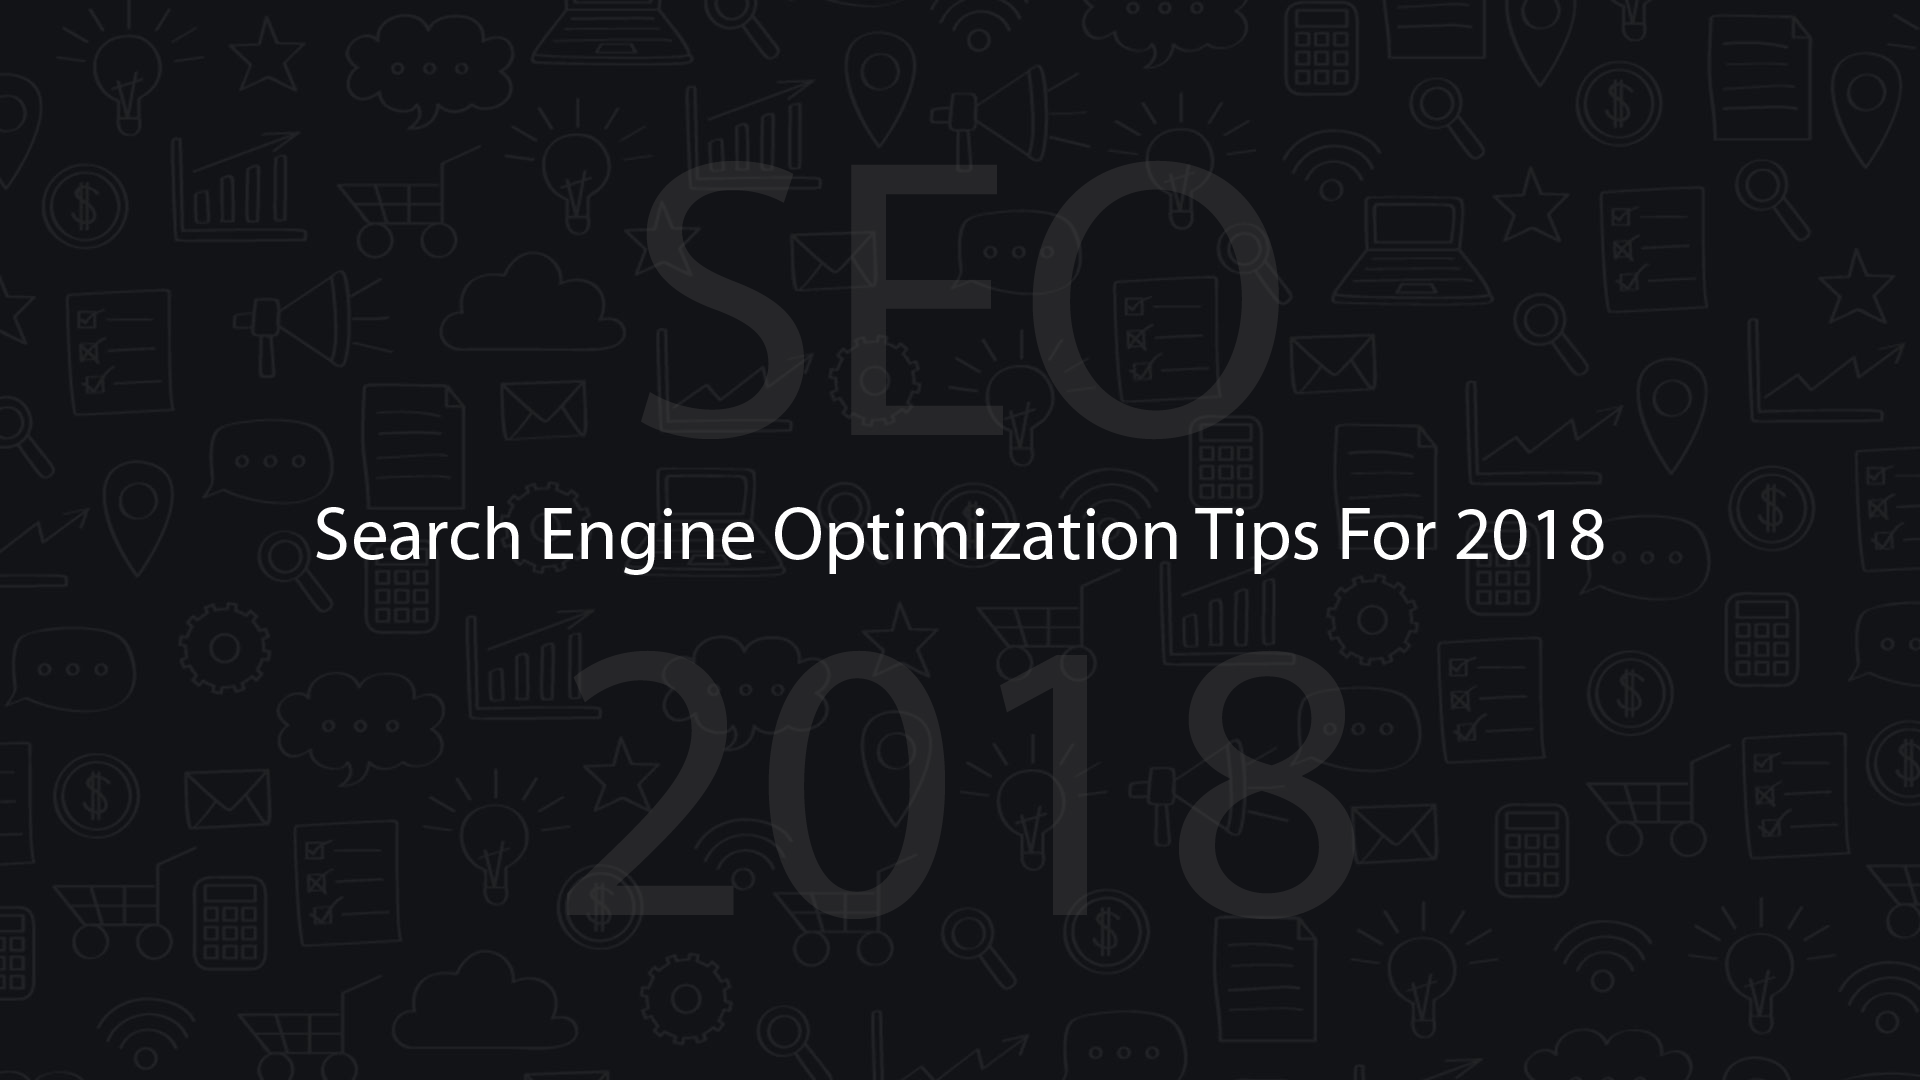 Search Engine Optimization Tips for 2018